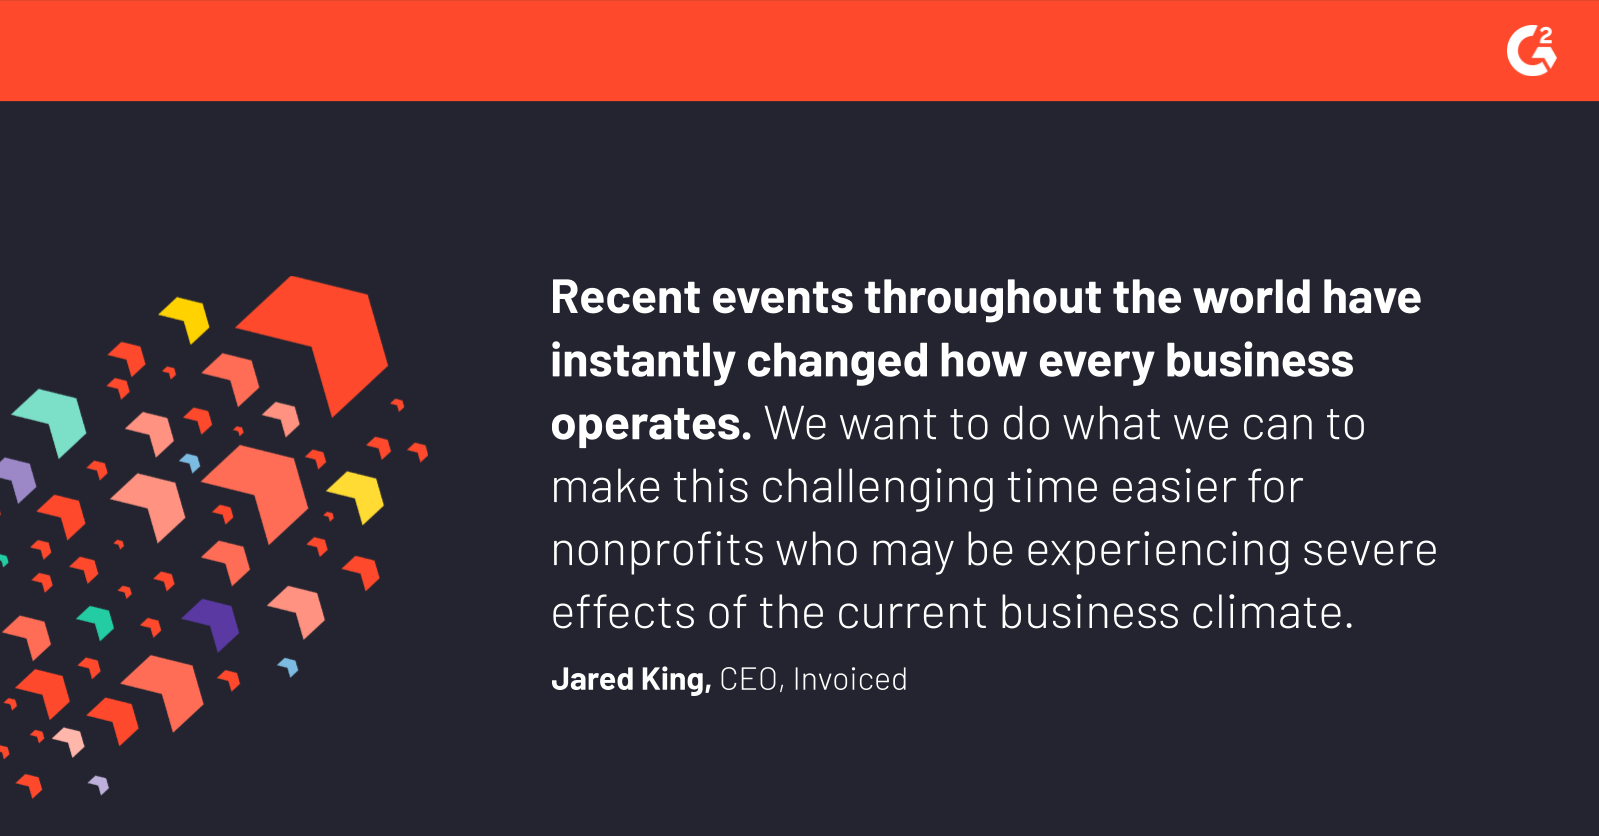 Jared King, CEO of Invoiced explains why the company has offered free services in light of the COVID-19 health crisis.